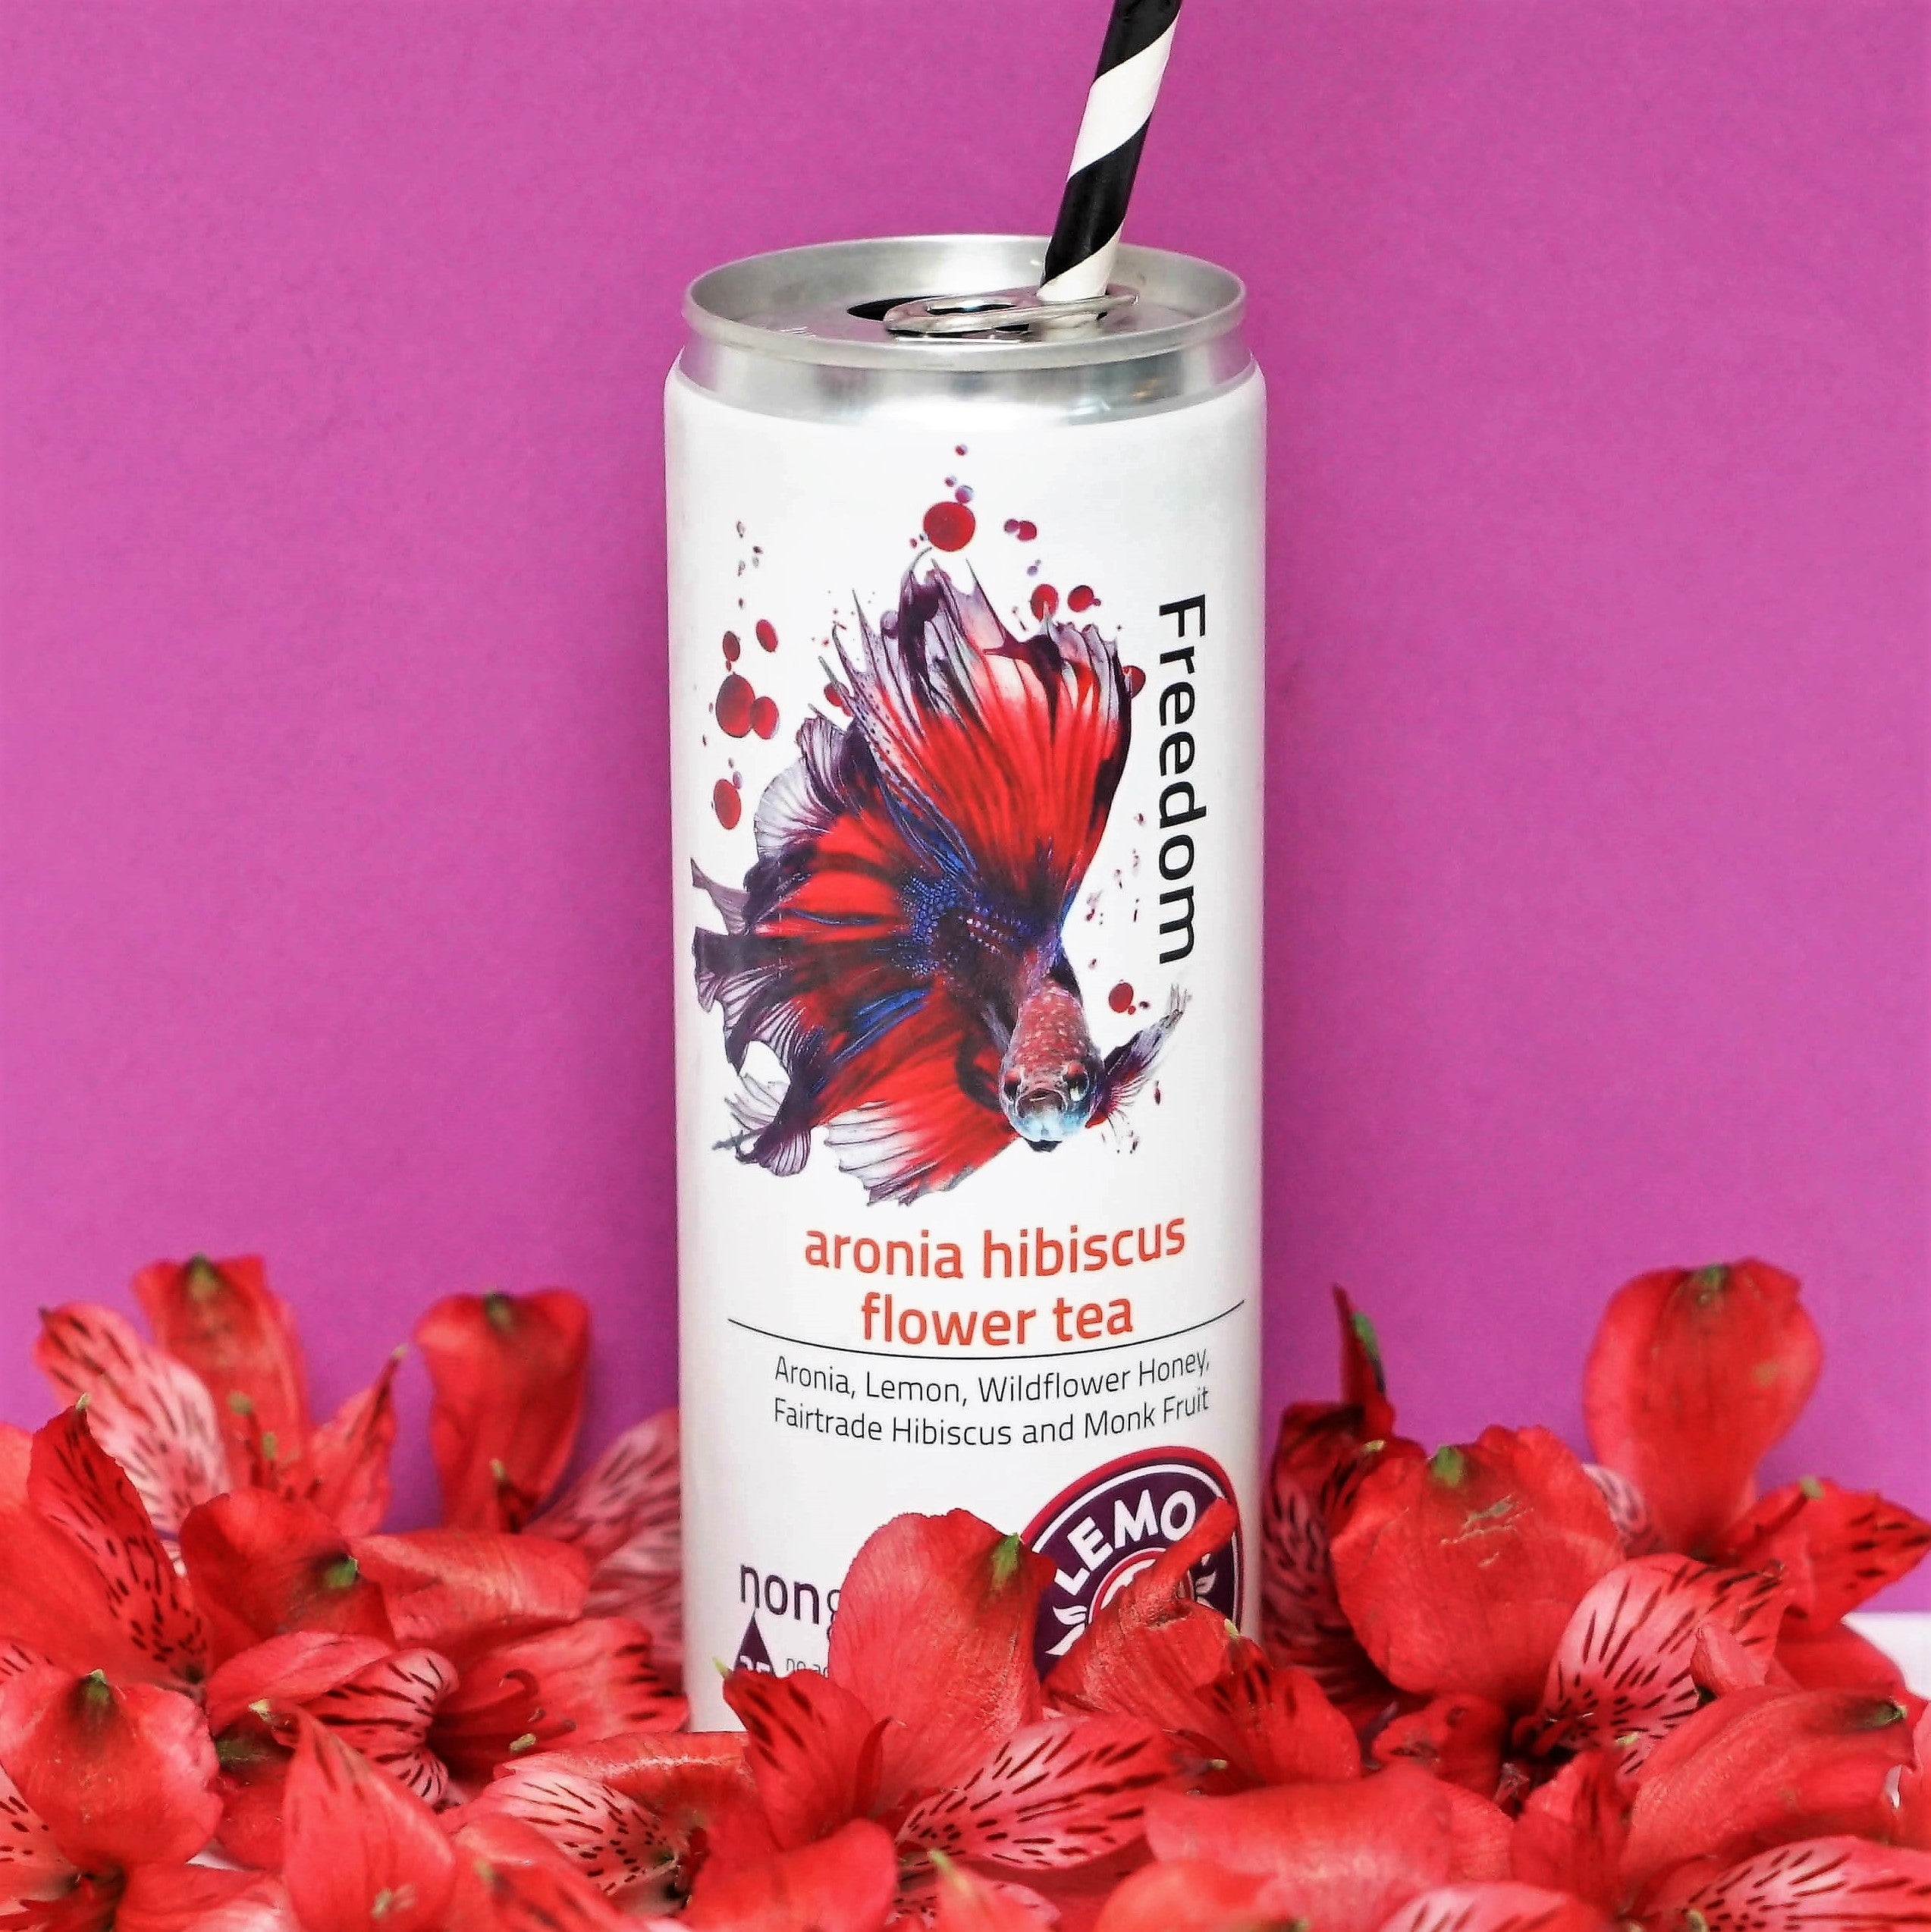 Freedom Tea With Aronia And Fair Trade Organic Hibiscus Flower